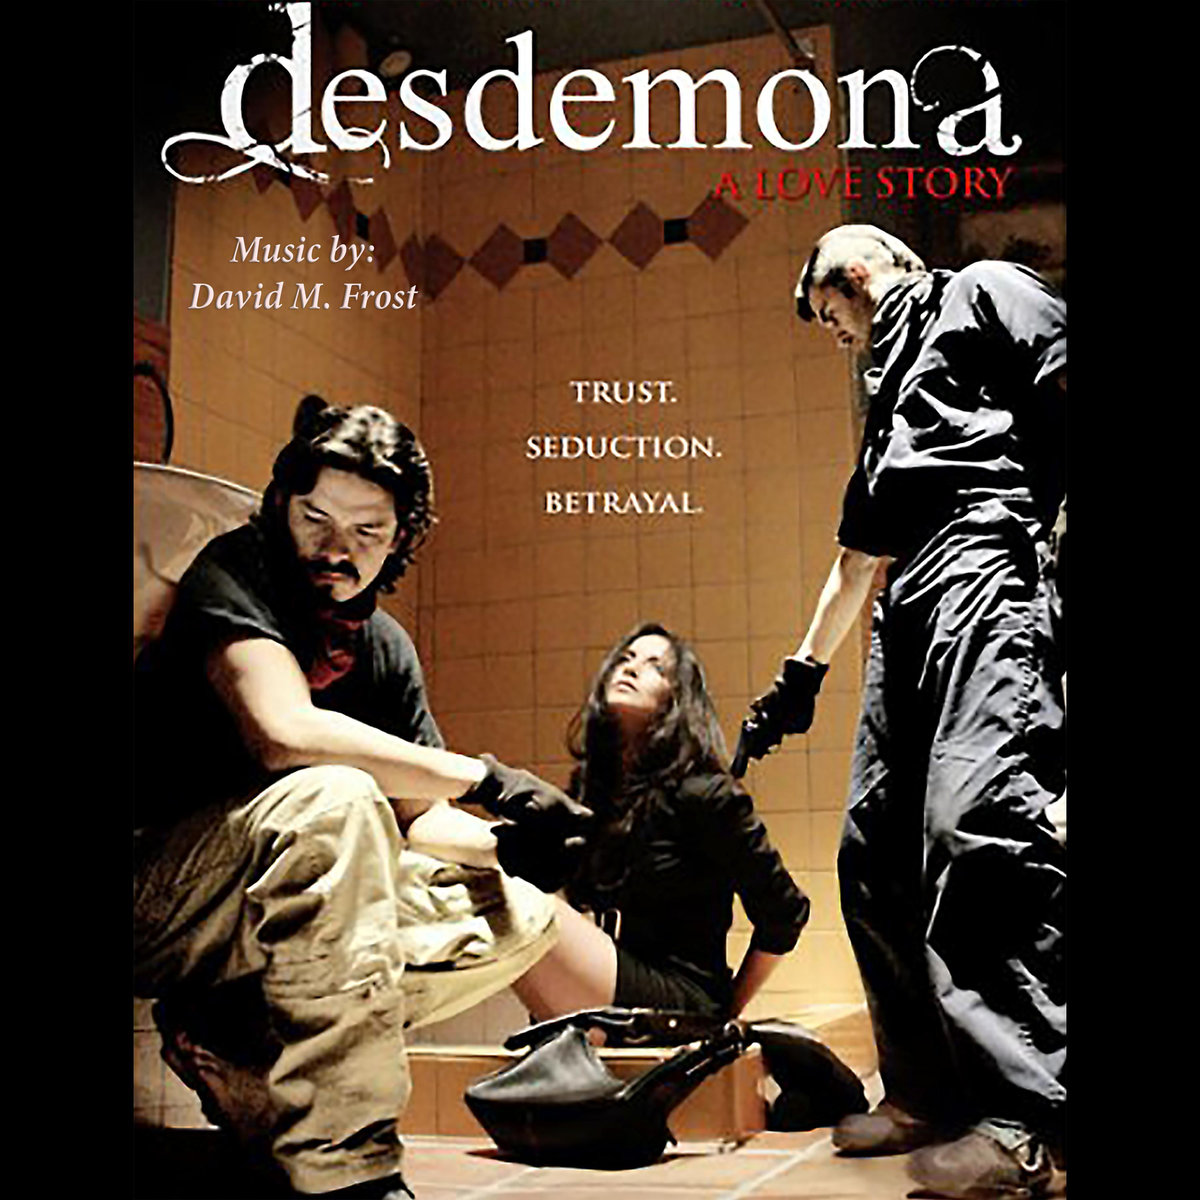 desdemona single men The song's lyrics suggest that both men and women are unfaithful to one another to desdemona, the song seems to represent a melancholy and resigned acceptance of her alienation from othello's affections, and singing it leads her to question emilia about the nature and practice of infidelity.